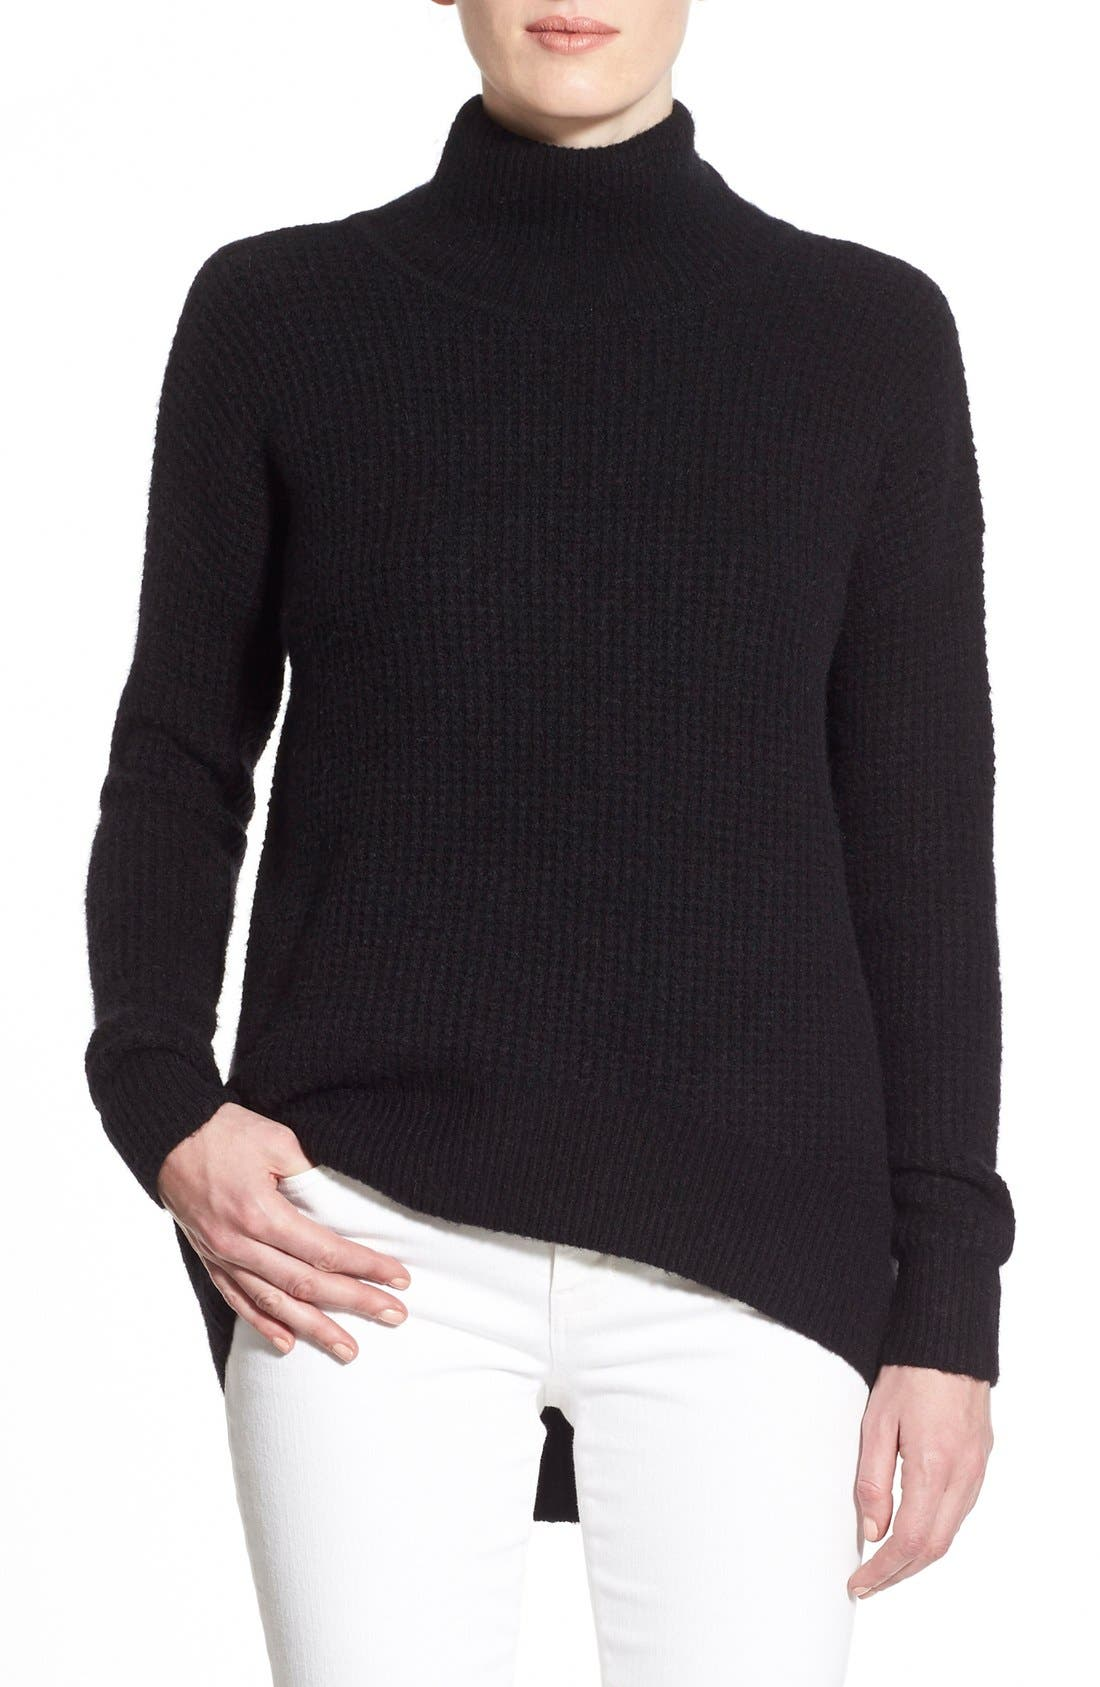 Alternate Image 1 Selected - Madewell Wafflestitch Turtleneck Sweater